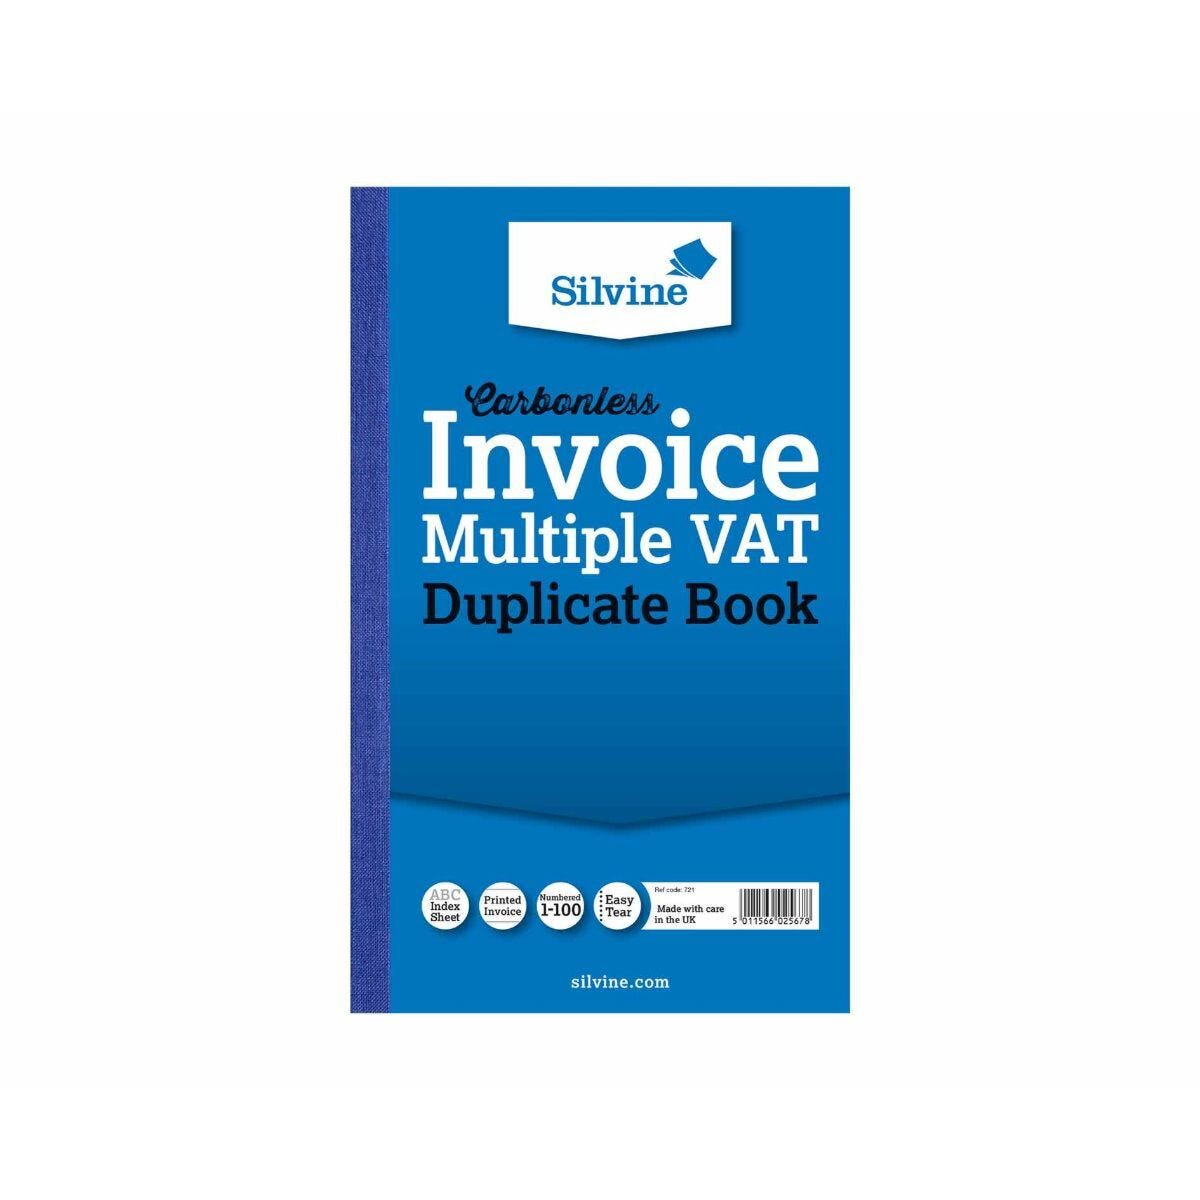 Silvine Carbonlesss Duplicate Invoice VAT Book 100 Sheets